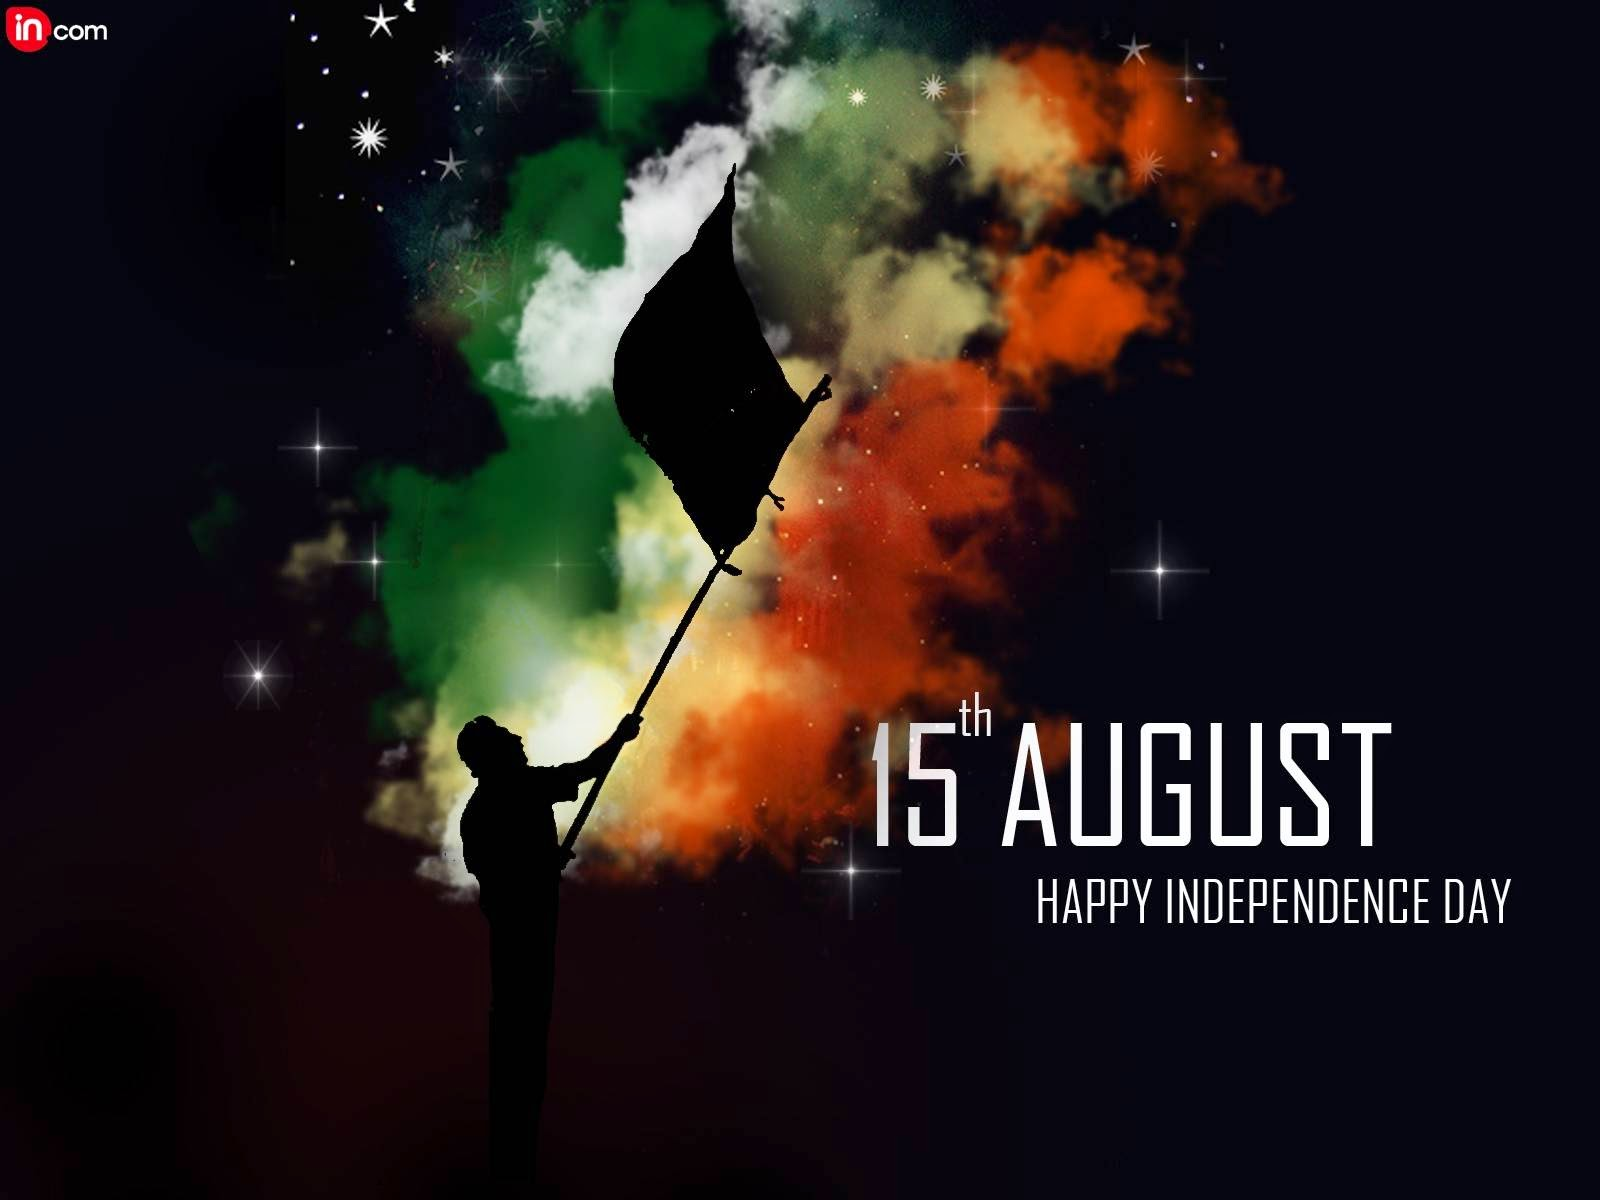 Independence Day Mobile Wallpapers: India Independence Day HD Wallpapers